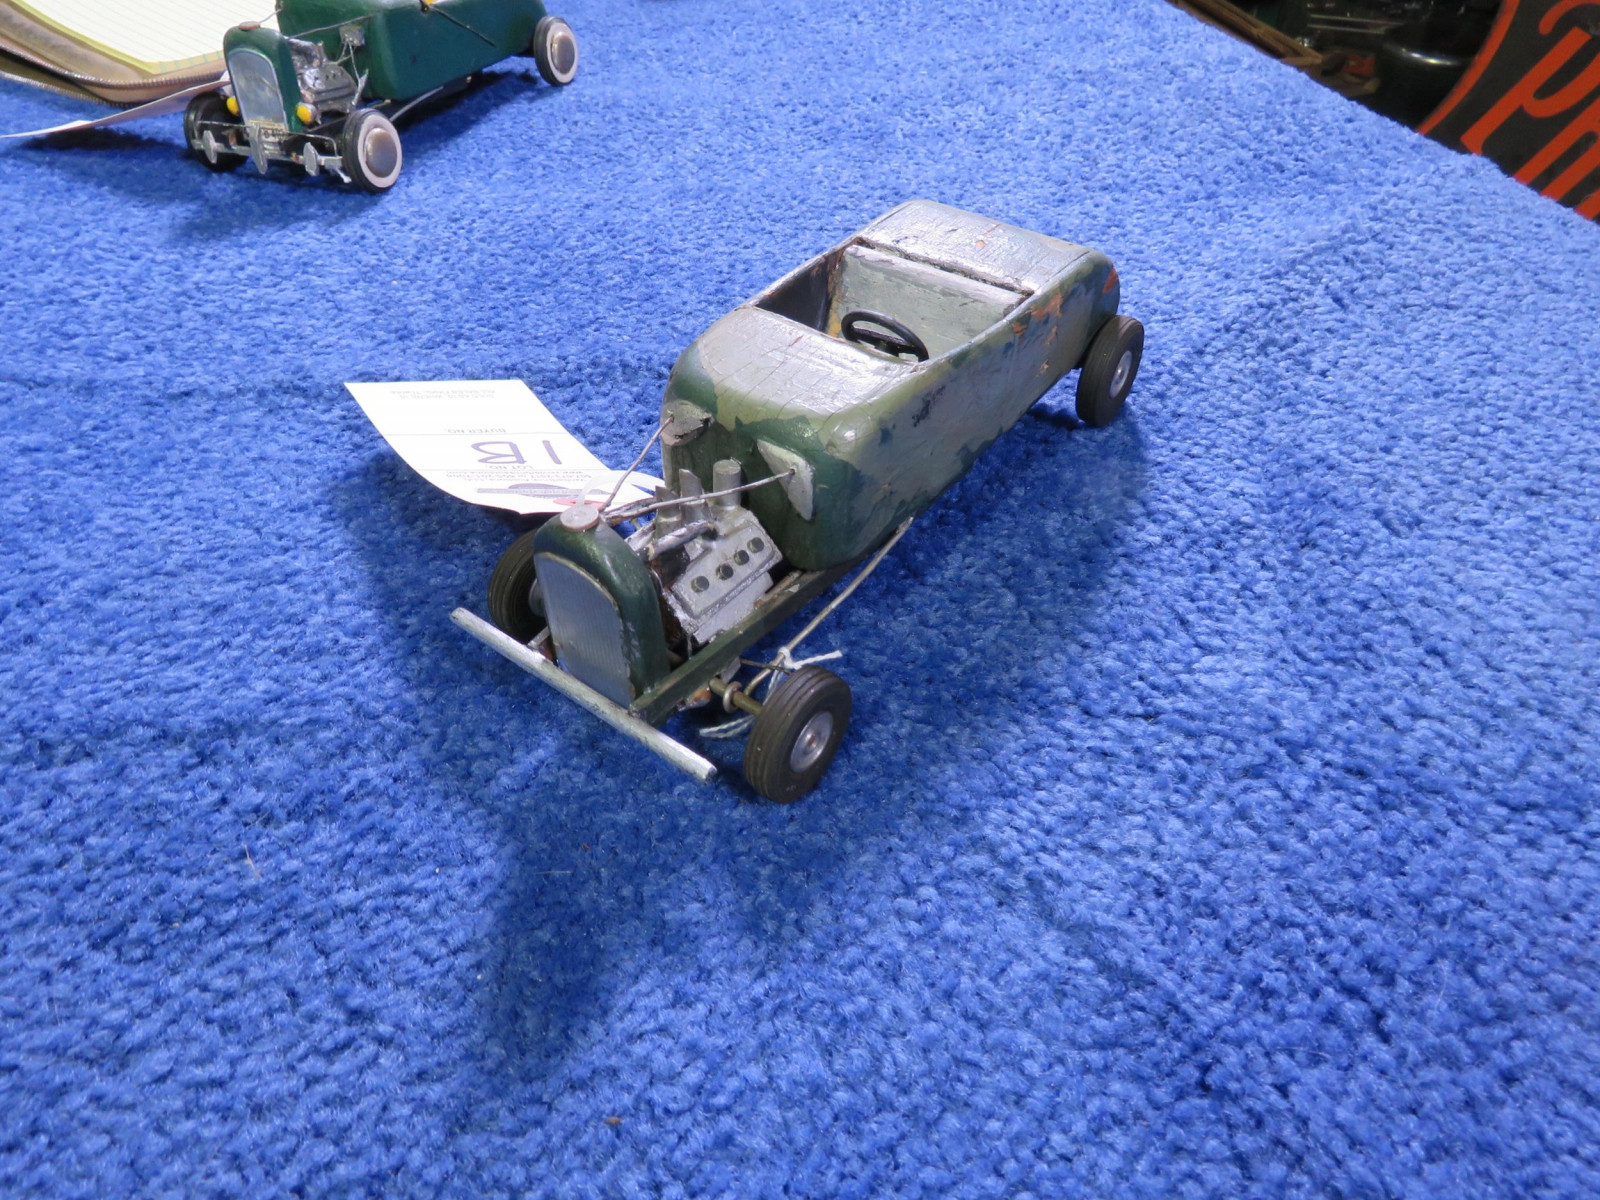 Vintage Hommade Wood Hot Rod Toy - Image 2